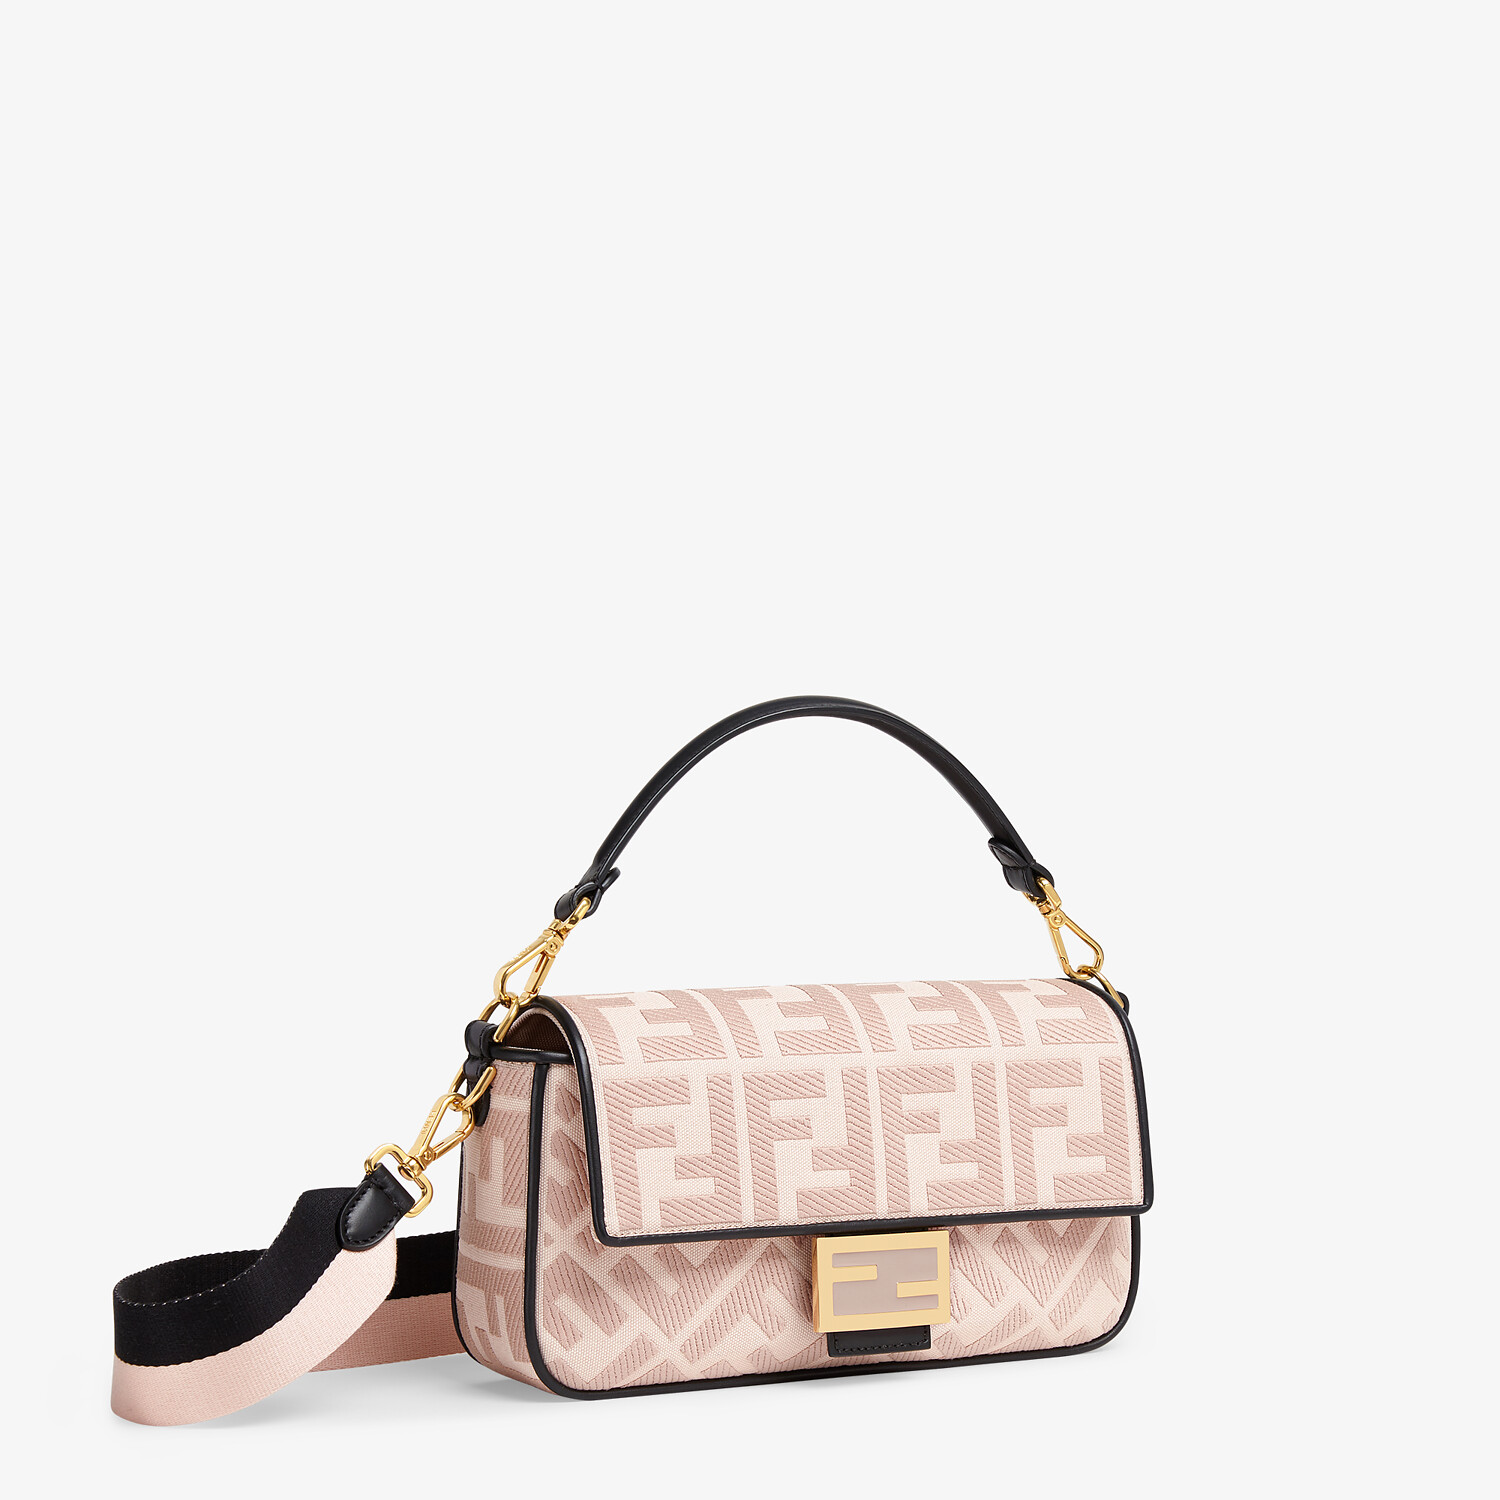 FENDI BAGUETTE - Embroidered pink canvas bag - view 2 detail